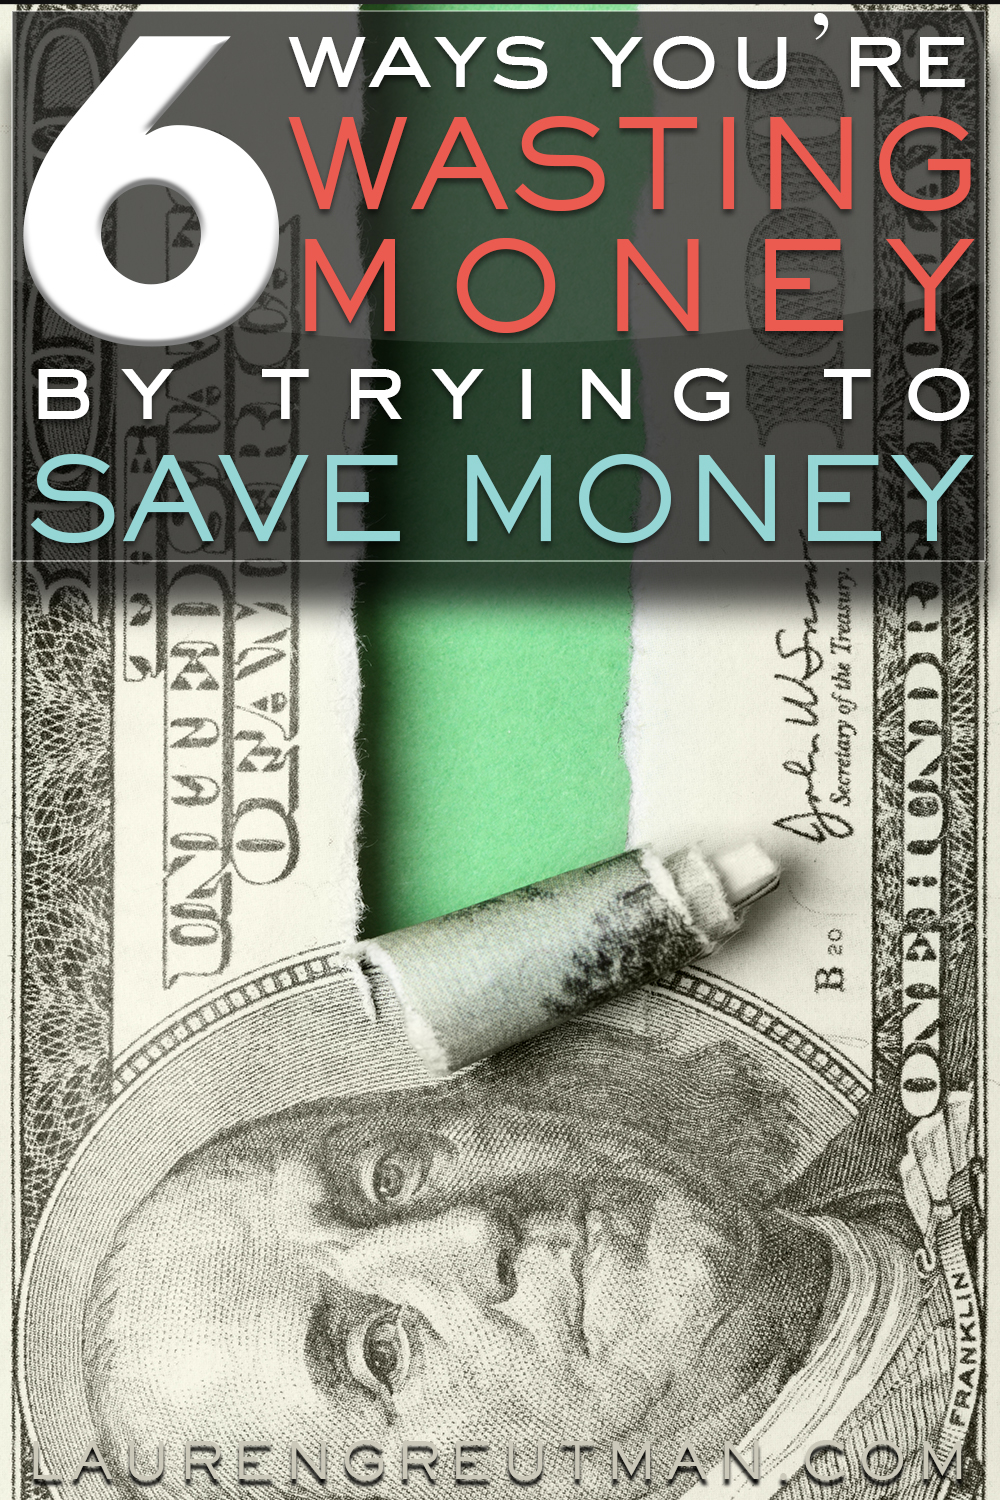 Trying to save money? Well, here are 6 ways that you might be wasting money by trying to SAVE money!